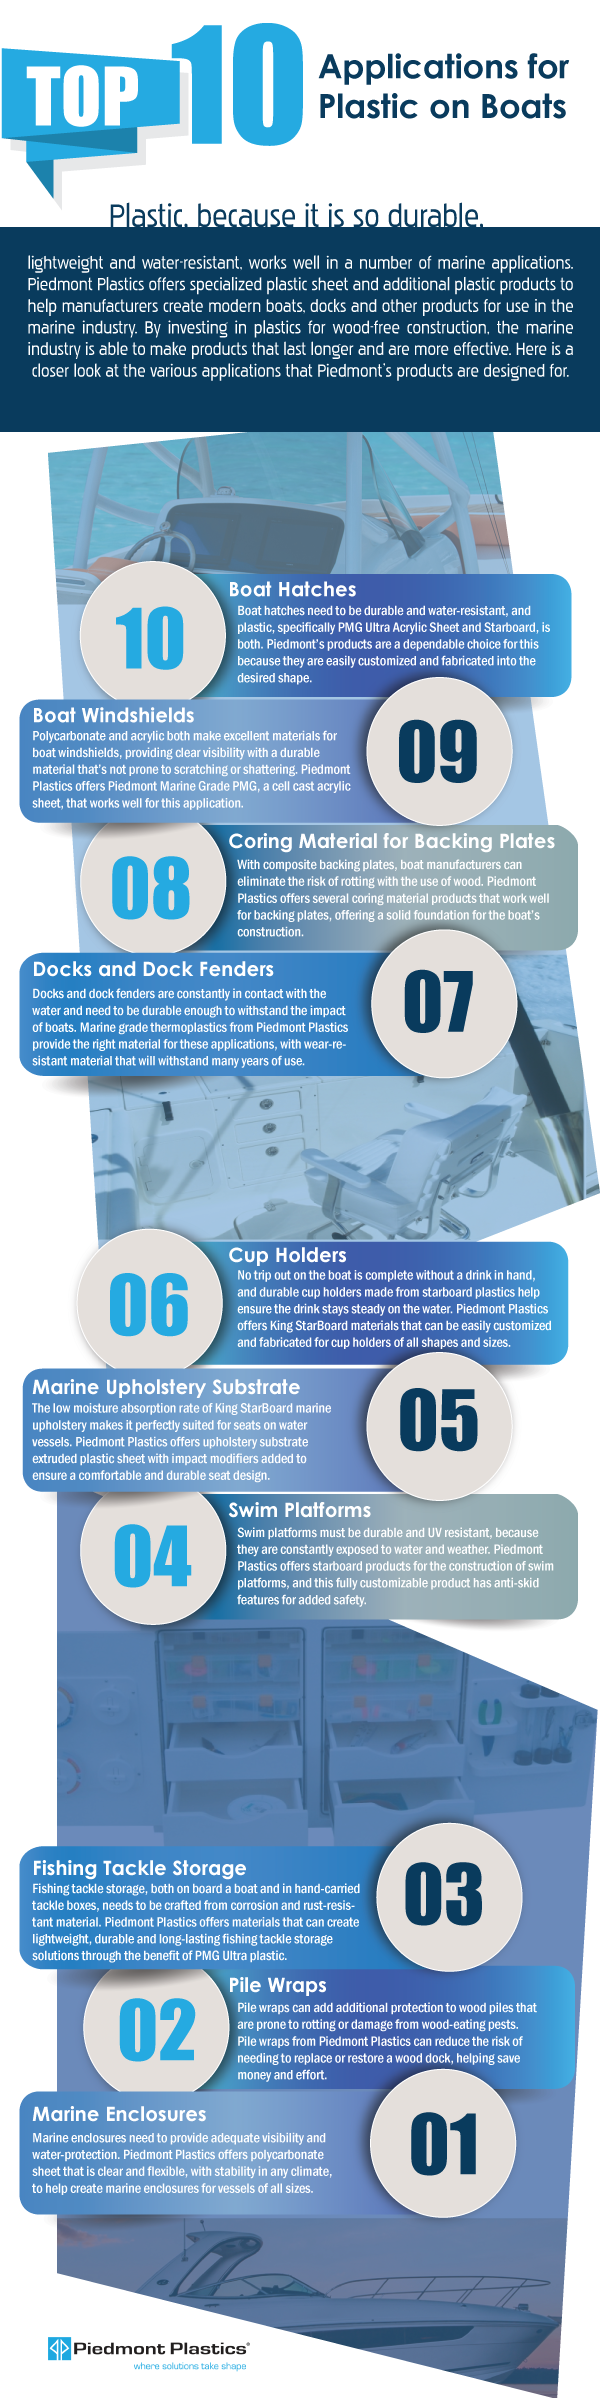 Top 10 Applications for Plastic on Boats #infographic